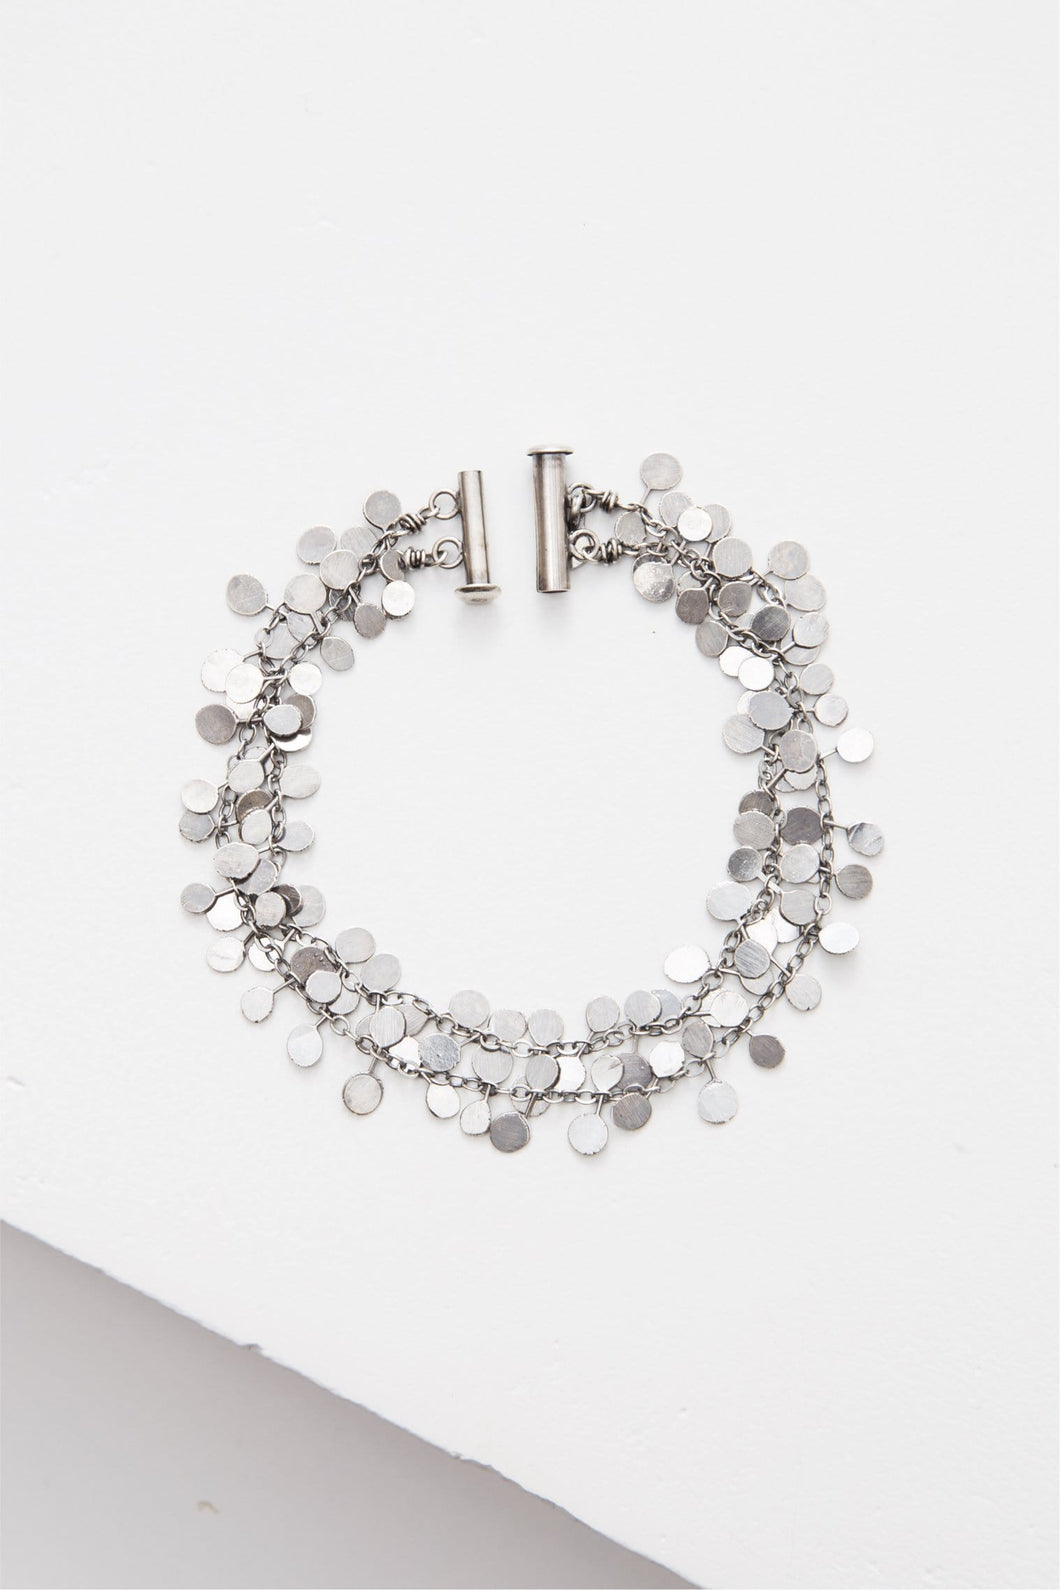 Coined Bright Bracelet - The Highlight Gallery